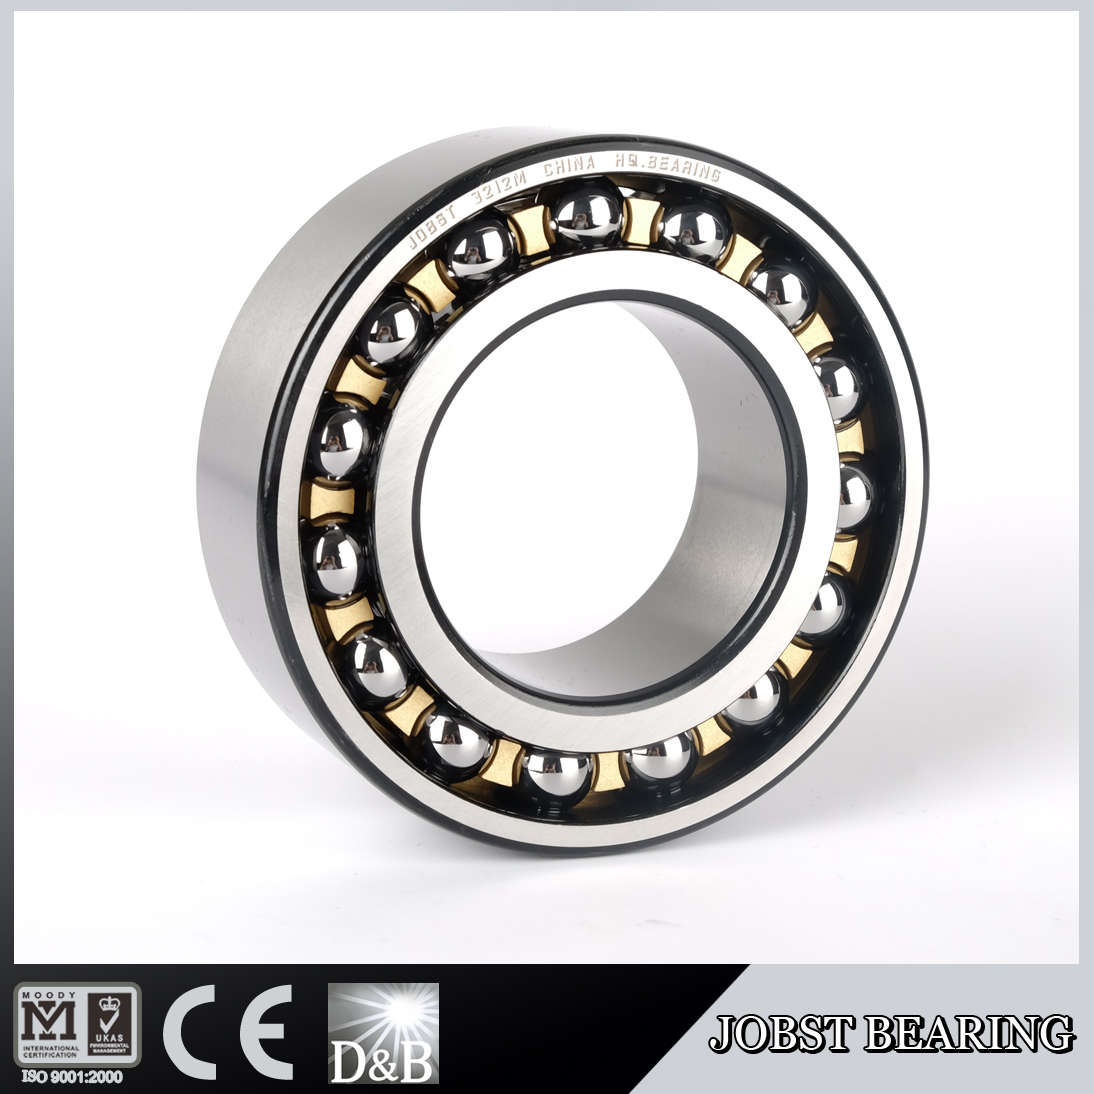 190 x 380 x 115 mm Ball Thrust Bearing Spherical Roller Bearing…